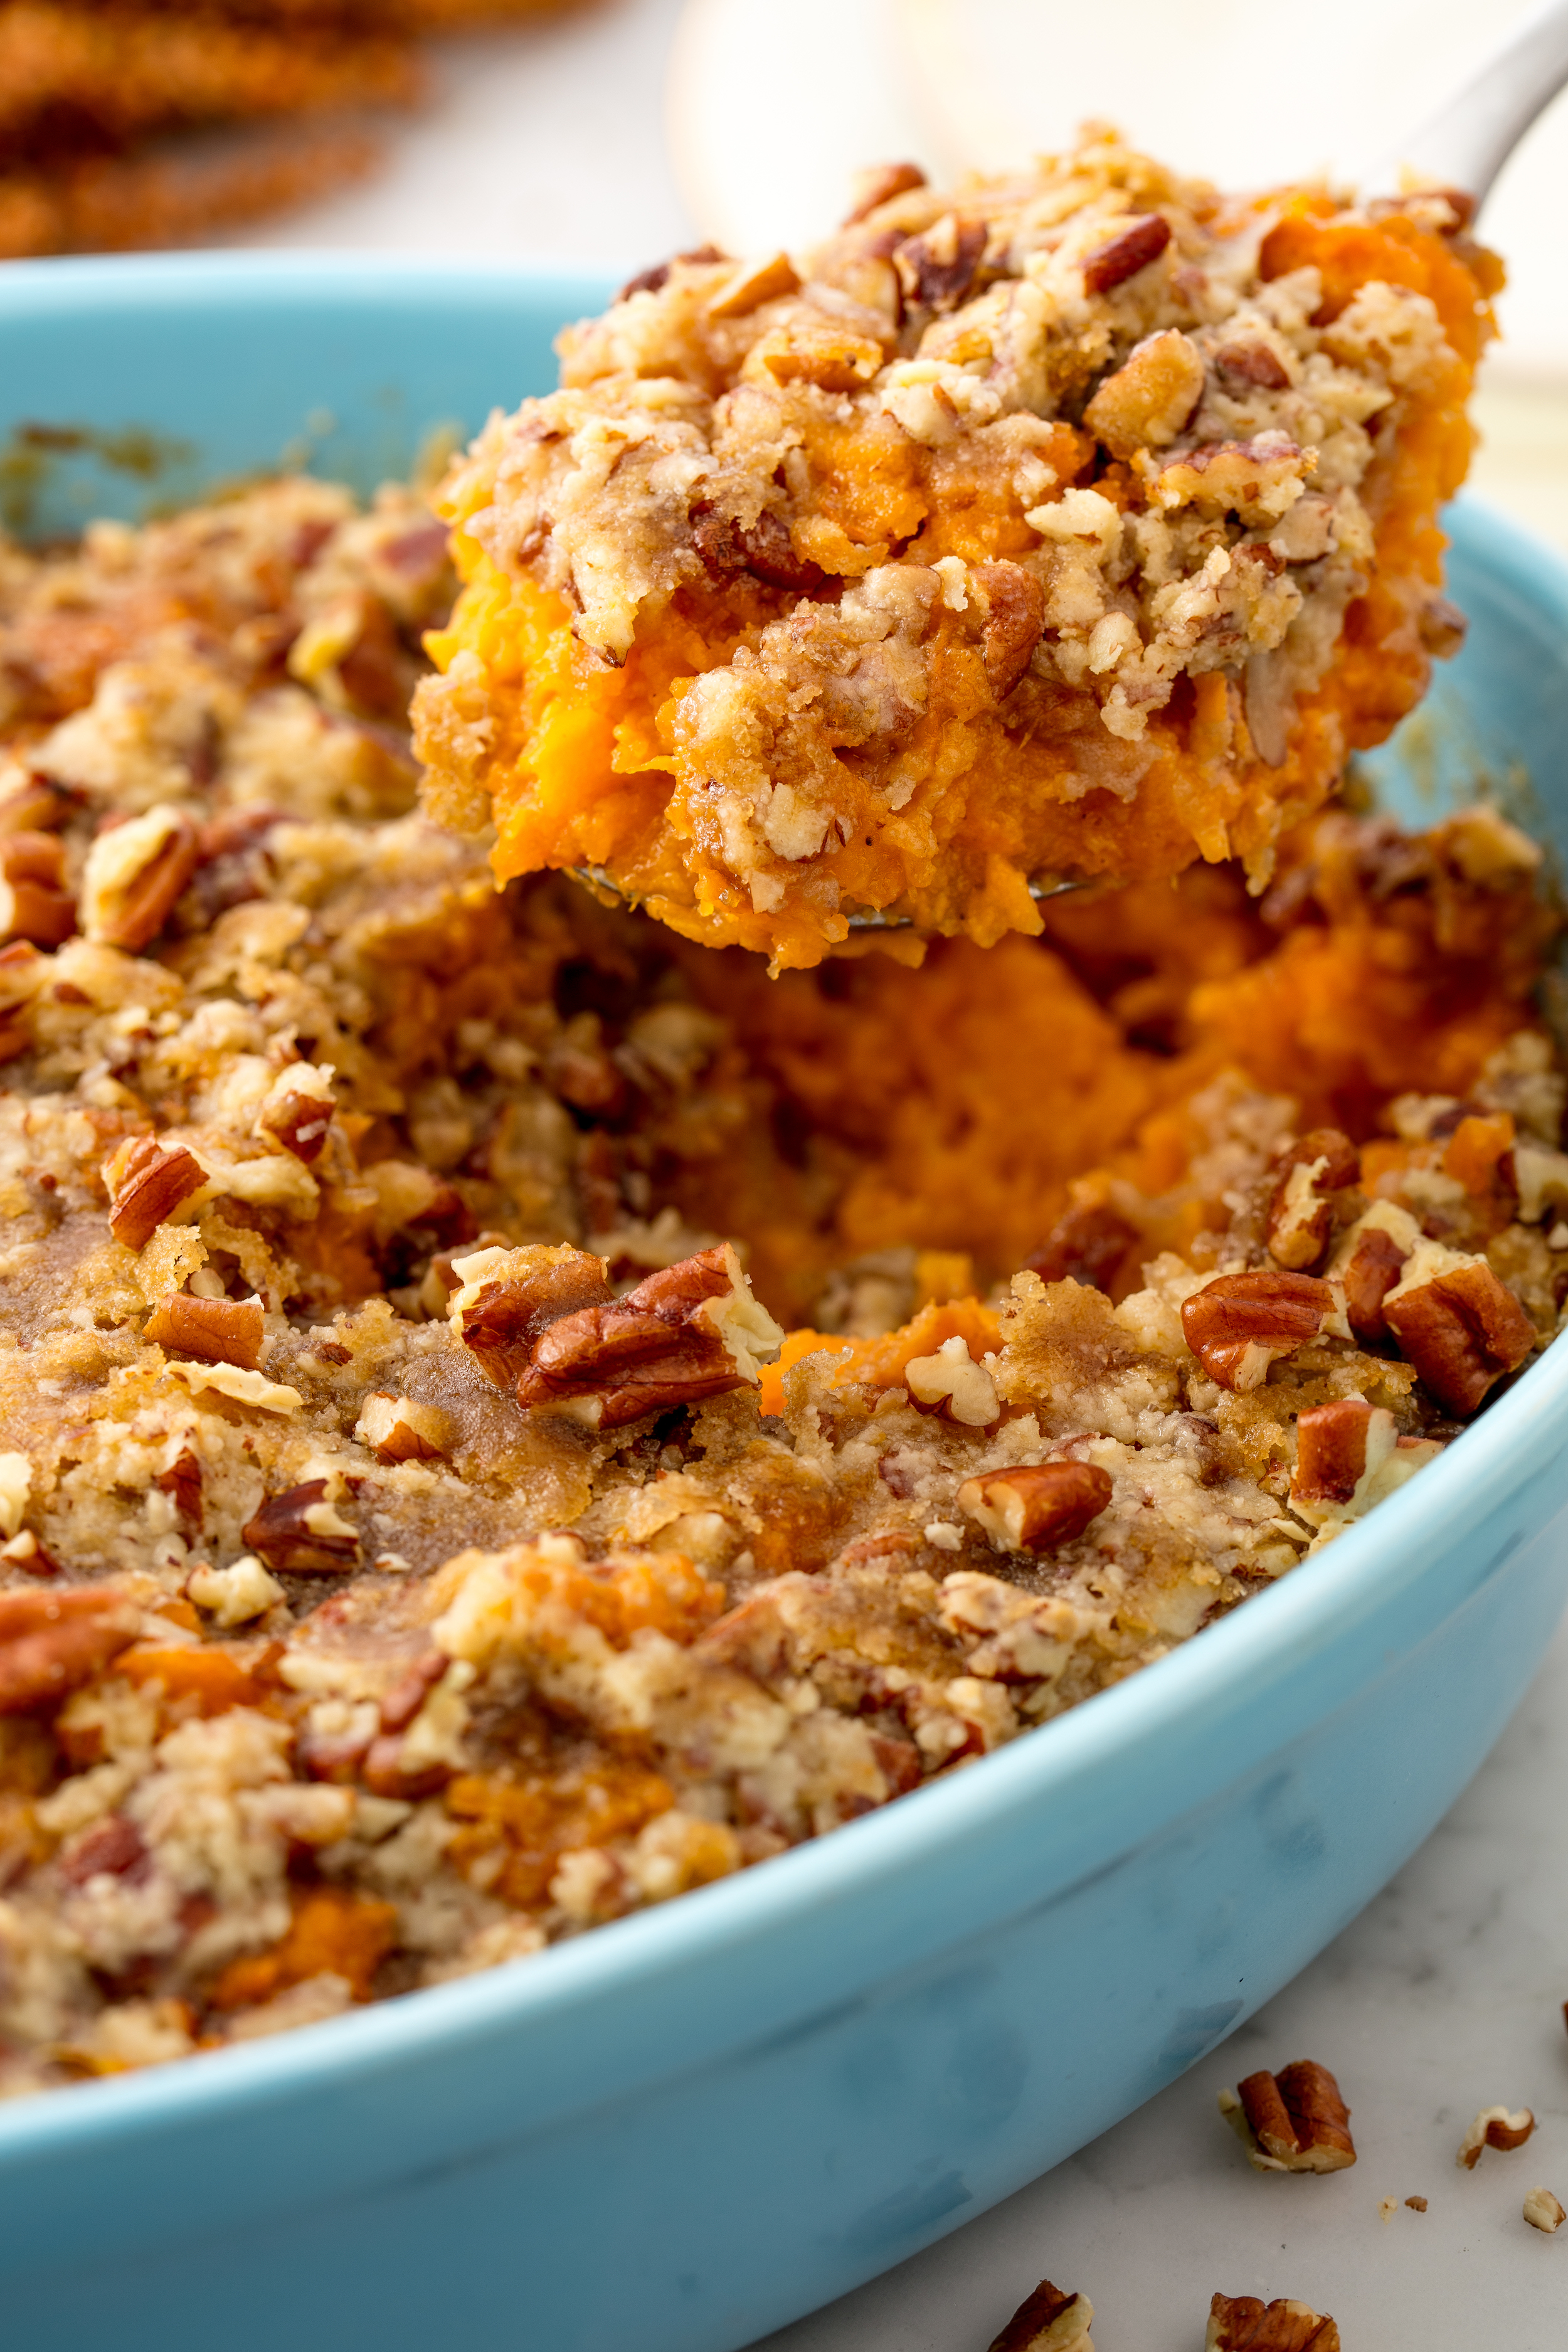 20 Easy Sweet Potato Casserole Recipes - How to Make the ...